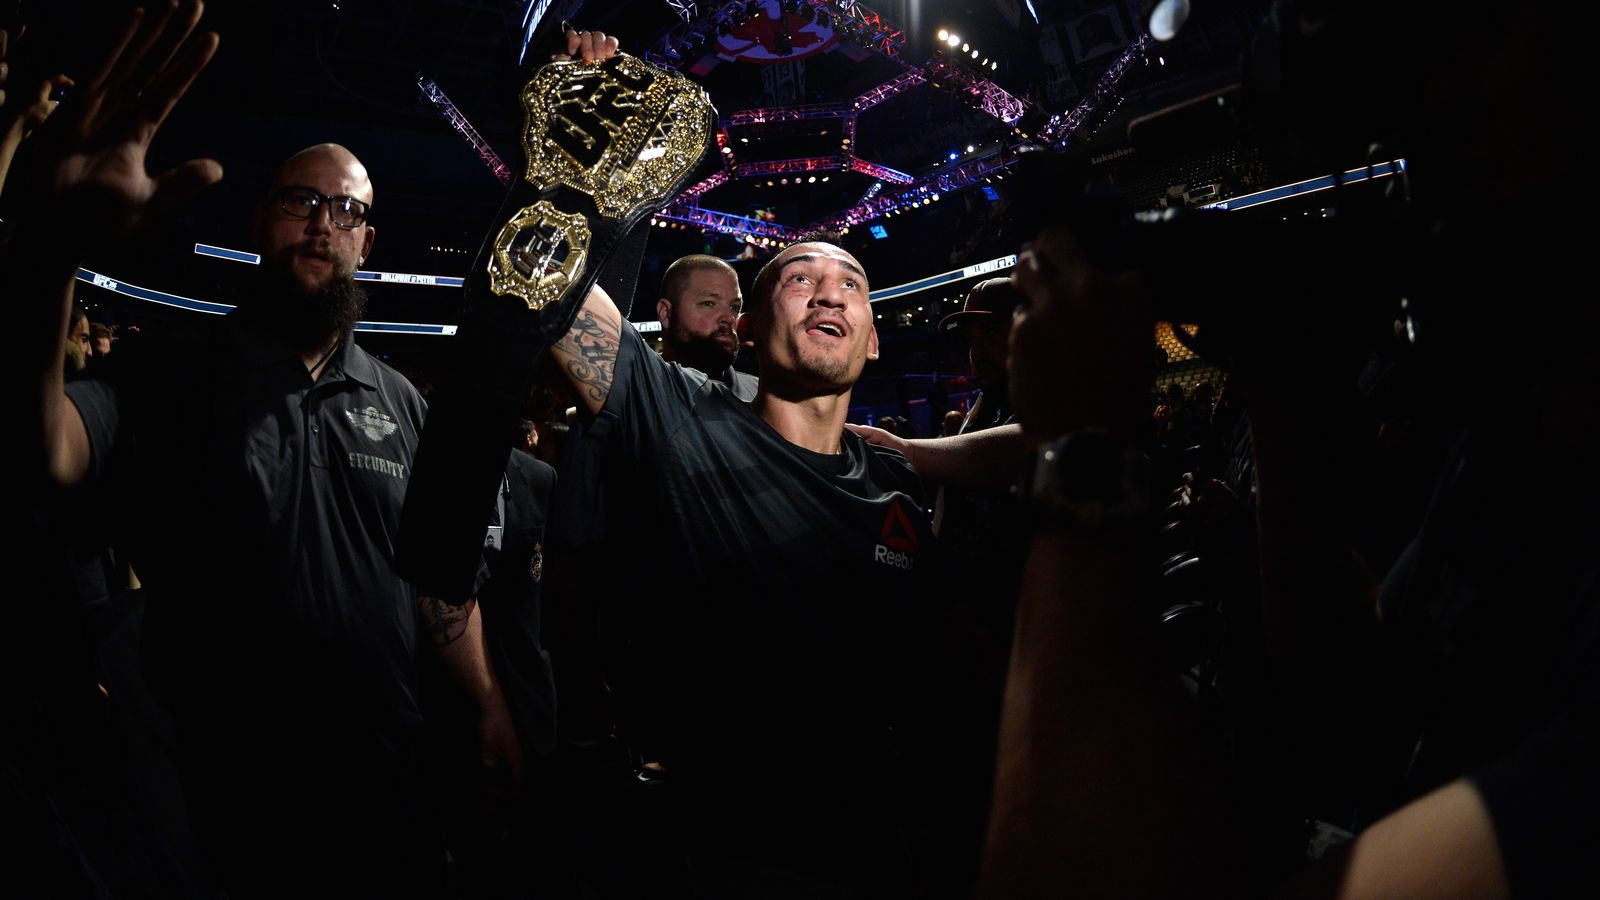 TORONTO, CANADA - DECEMBER 10:  Max Holloway celebrates his victory over Anthony Pettis in their interim UFC featherweight championship bout during the UFC 206 event inside the Air Canada Centre on December 10, 2016 in Toronto, Ontario, Canada. (Photo by Brandon Magnus/Zuffa LLC/Zuffa LLC via Getty Images)